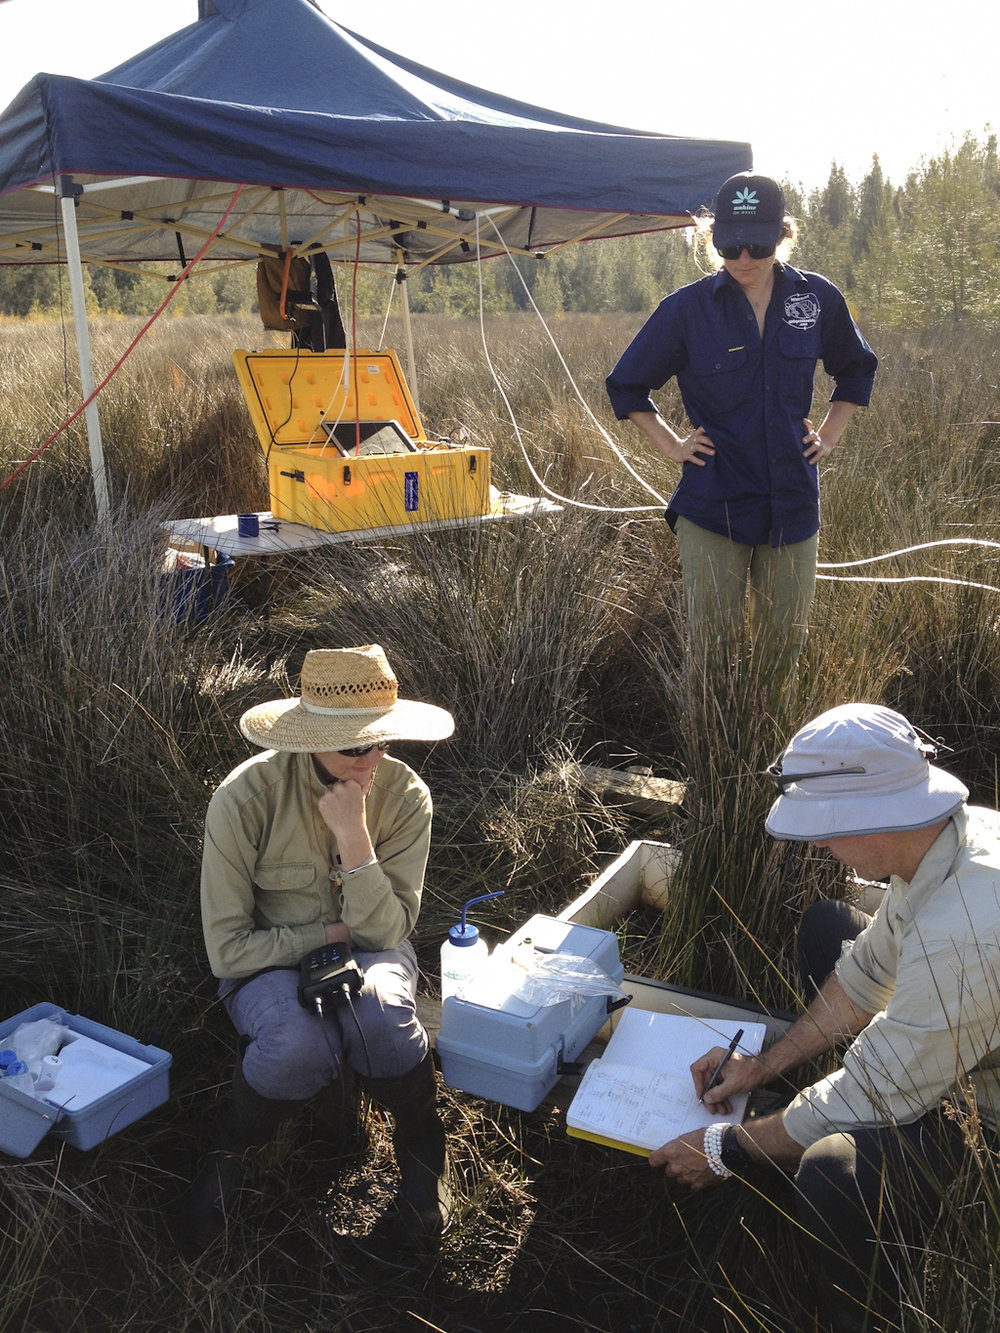 Measuring soil redox conditions with geoscience team